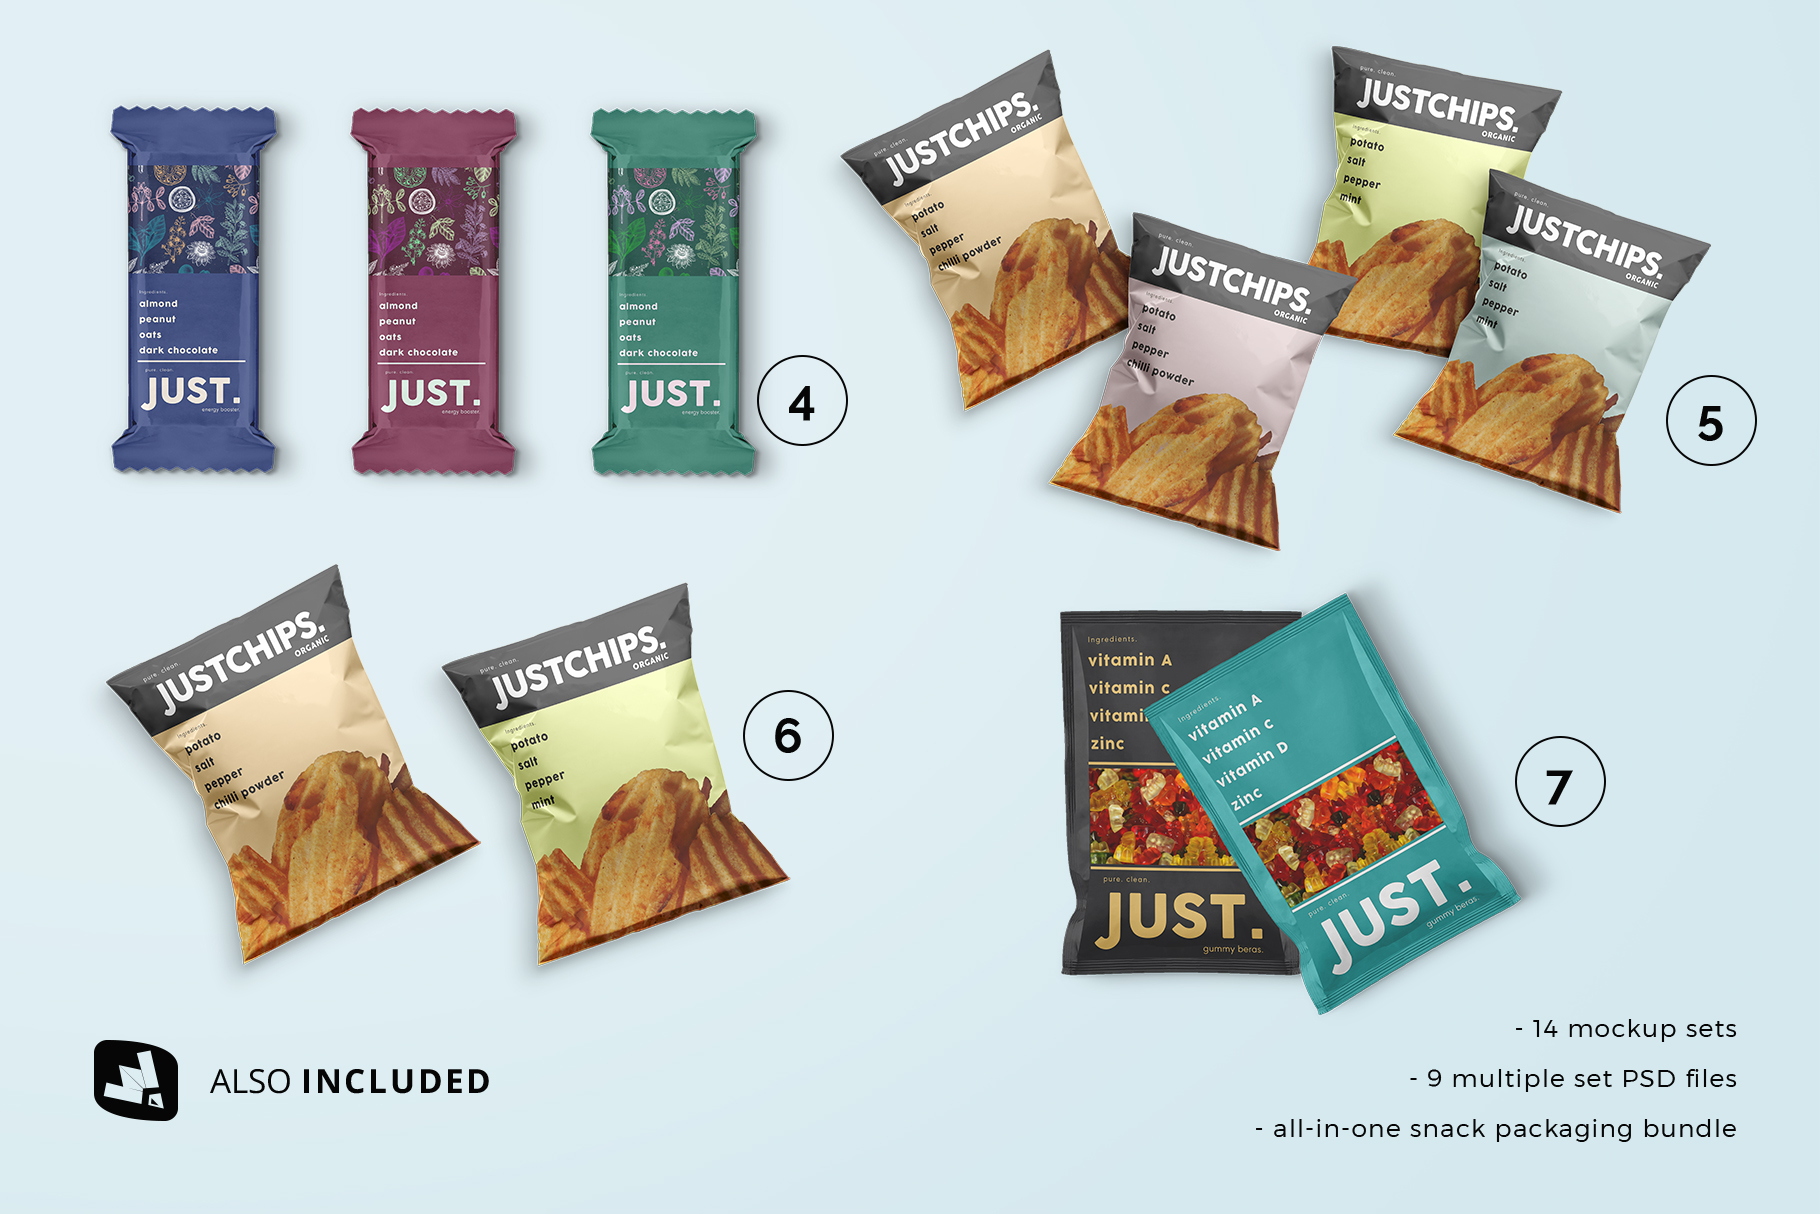 two and three set files included in the snack packaging mockup bundle